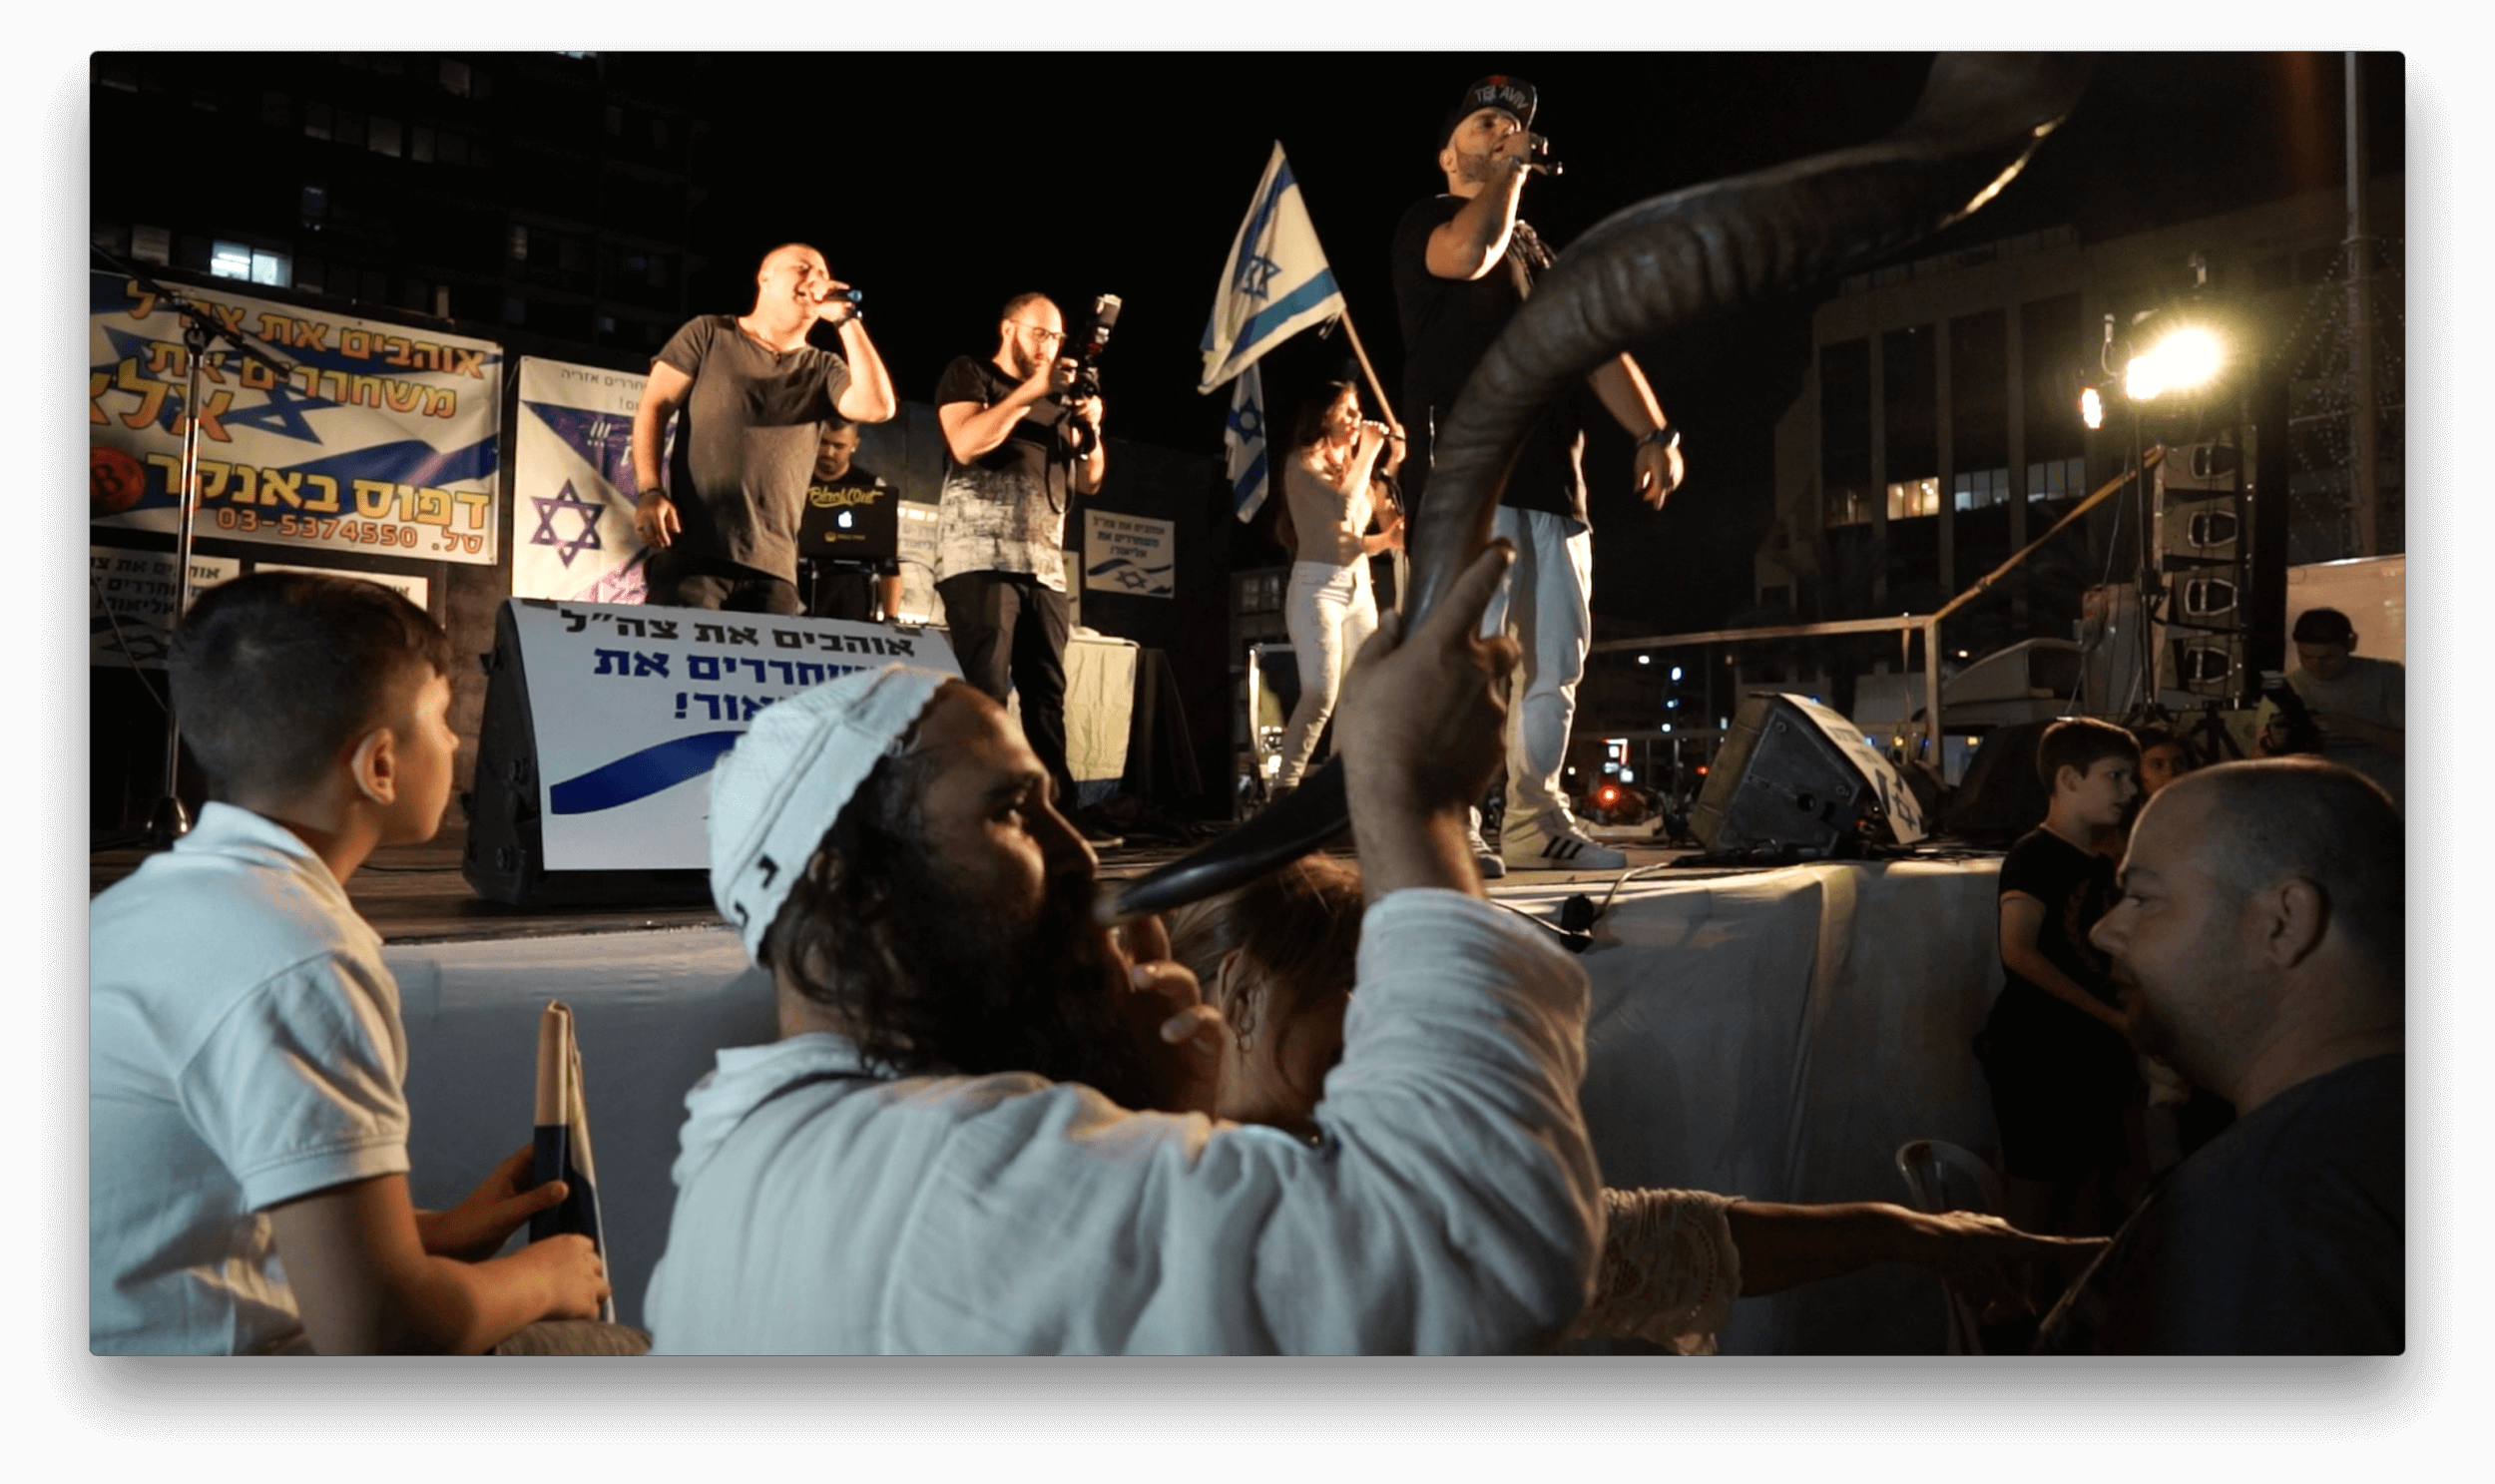 Right-wing rapper Subliminal and a Brestlev man blowing a shofar during the rally in Tel Aviv for soldier-executioner Elor Azarya